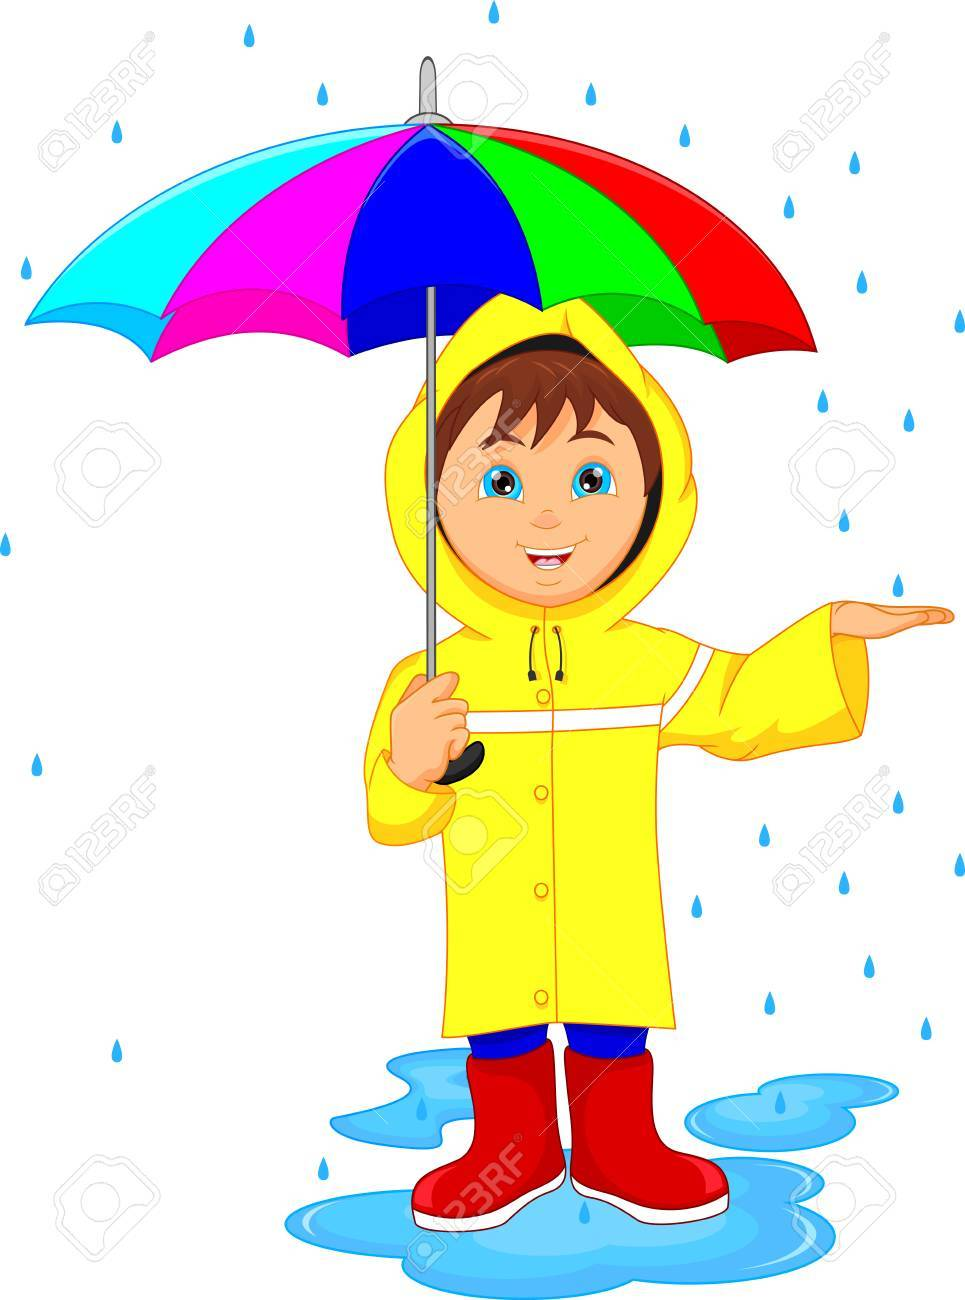 little boy in rain with umbrella.